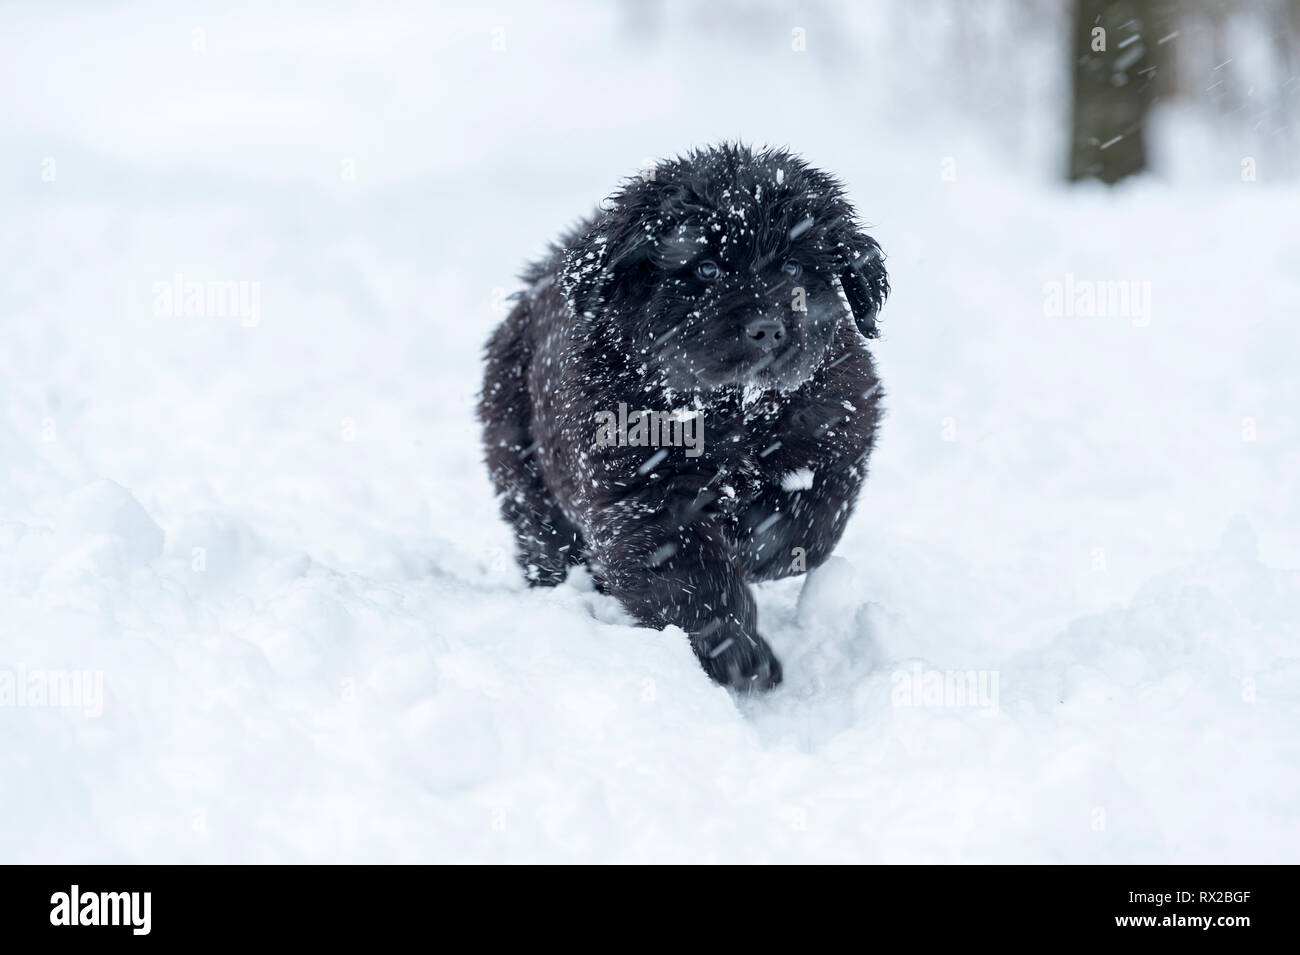 A Newfie puppy walking through the snow in a Canadian Winter - Stock Image